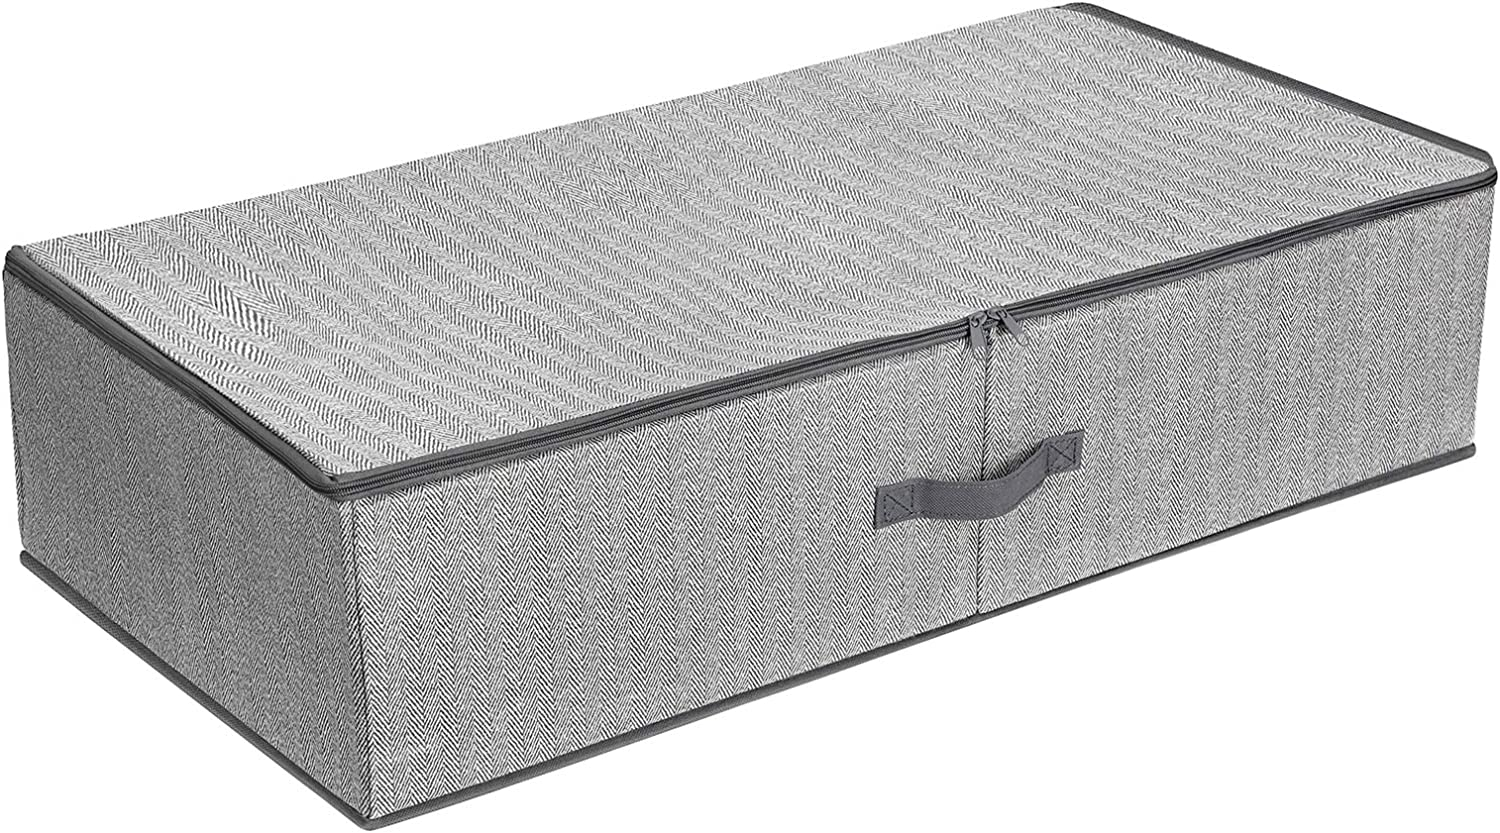 SONGMICS Underbed Storage Bag, Storage Boxes Under Bed with Adjustable Divider, Foldable Wardrobe Organizer, Above Wardrobe, for Clothes Sheets Blankets, 32.3 x 16.5 x 7.9 Inches, Gray URUB01G